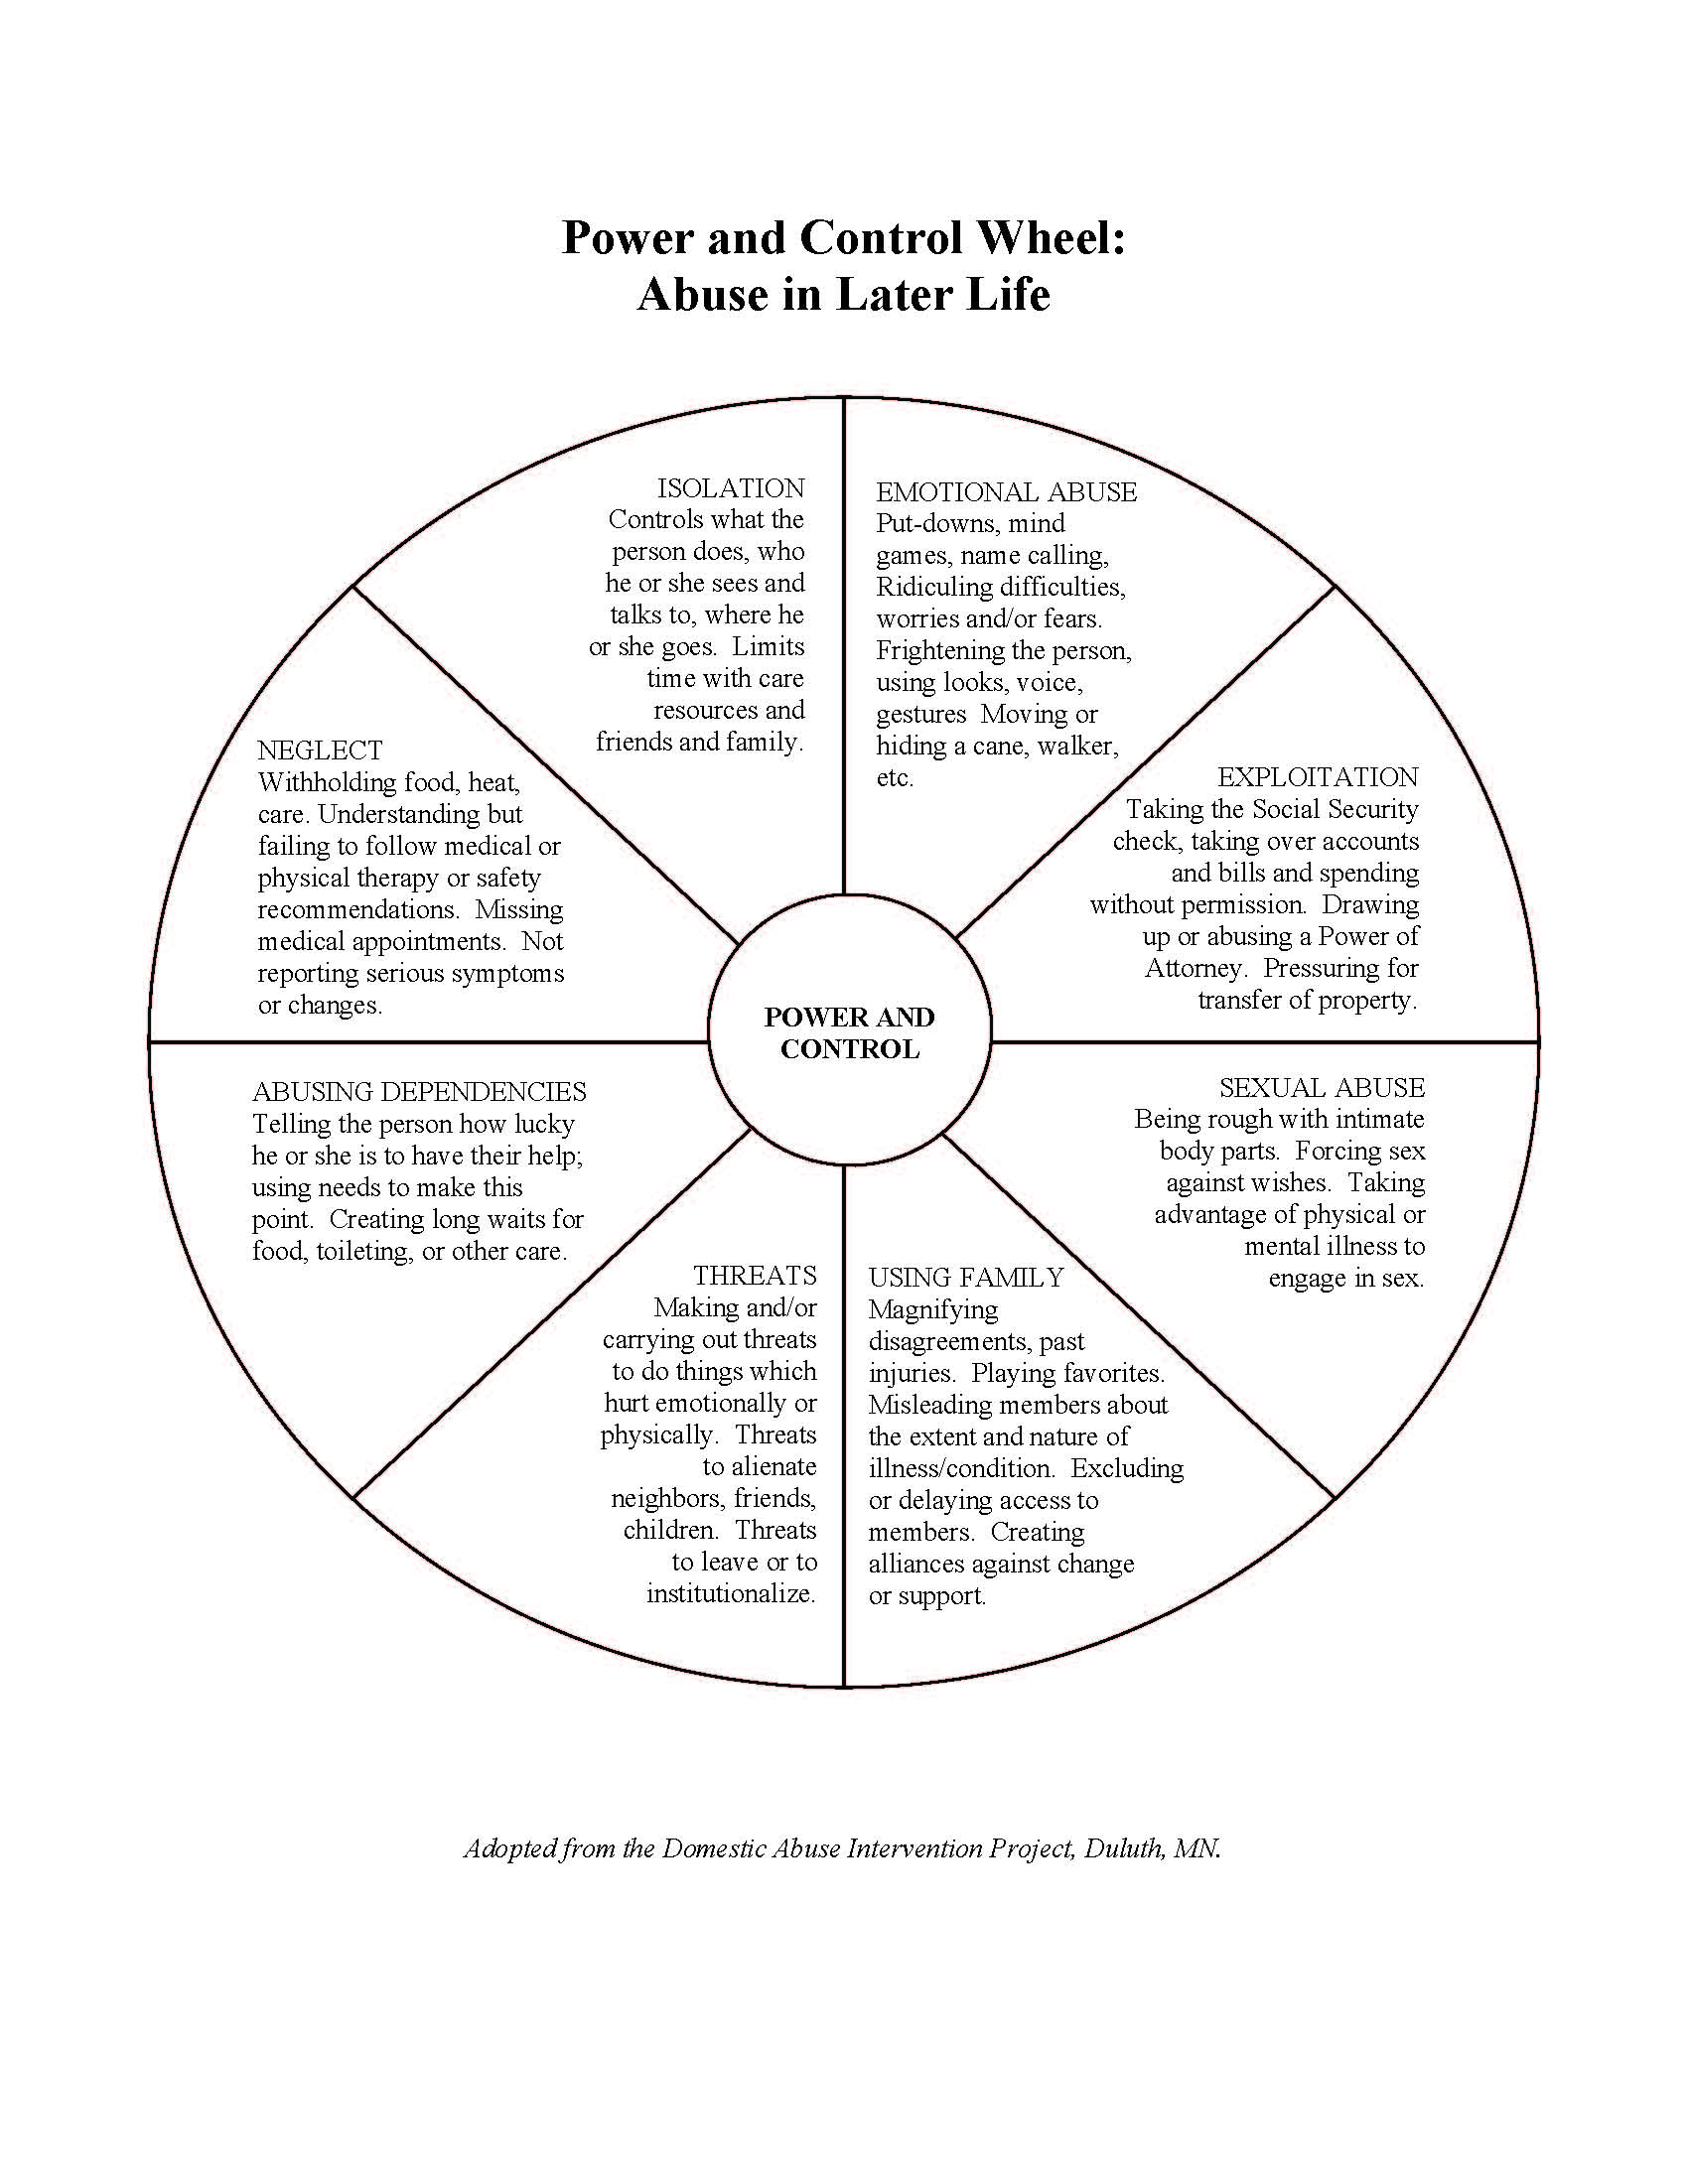 Power and Control Wheel: Abuse in Later Life